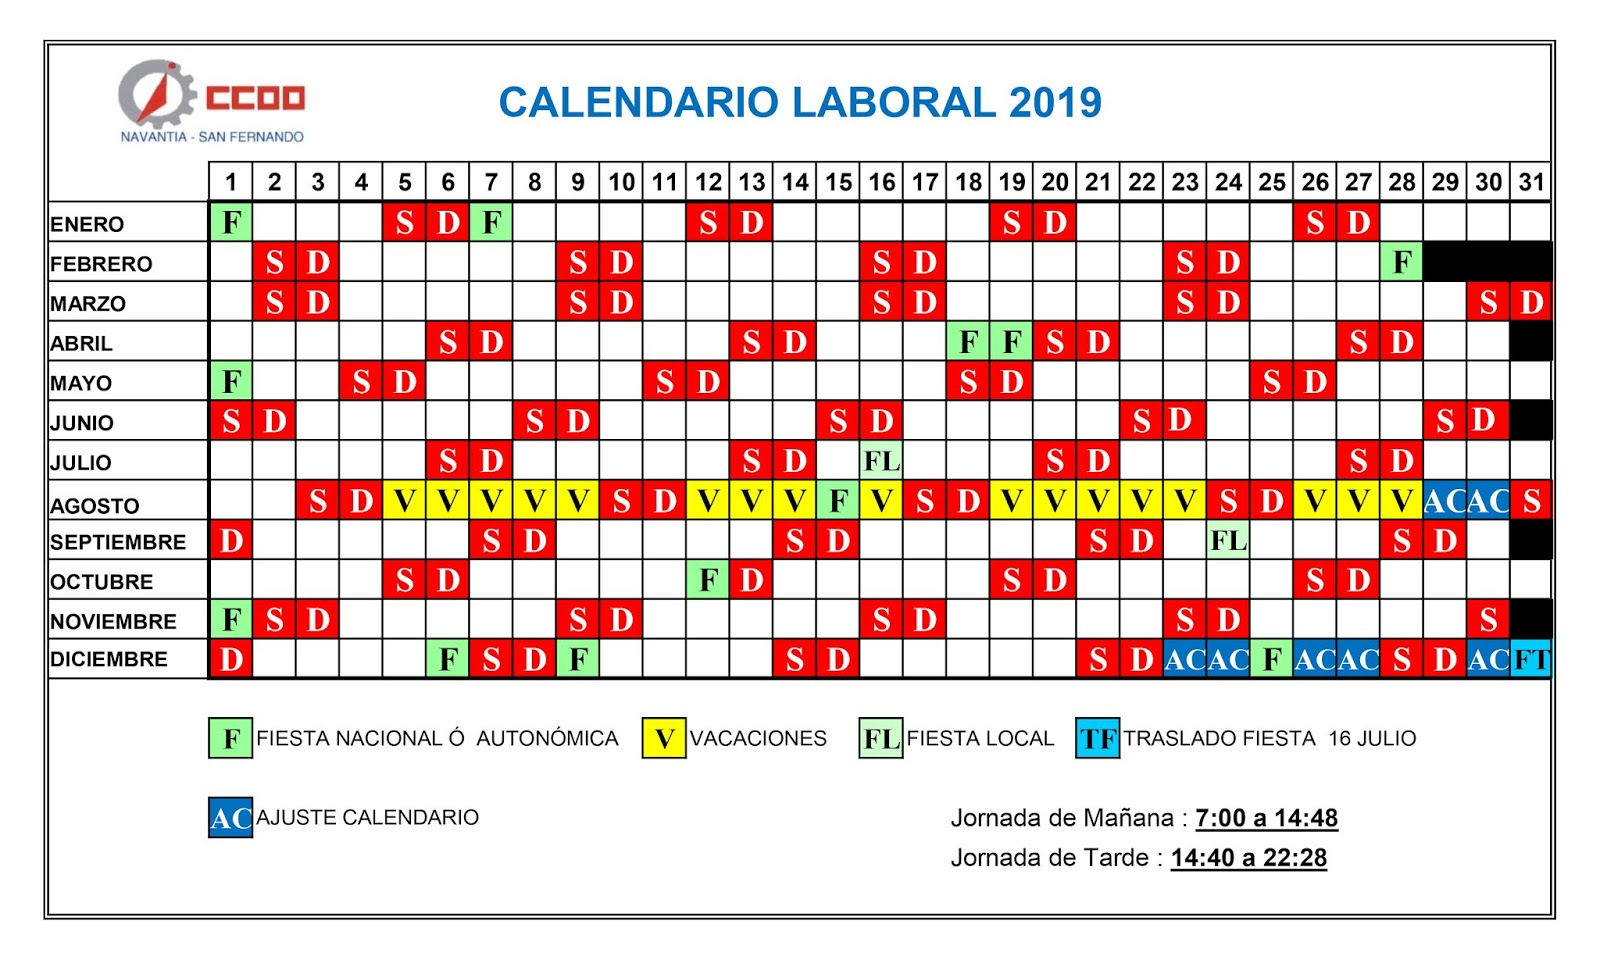 Calendario Laboral Construccion 2020.Ccoo Navantia San Fernando Calendario Laboral 2019